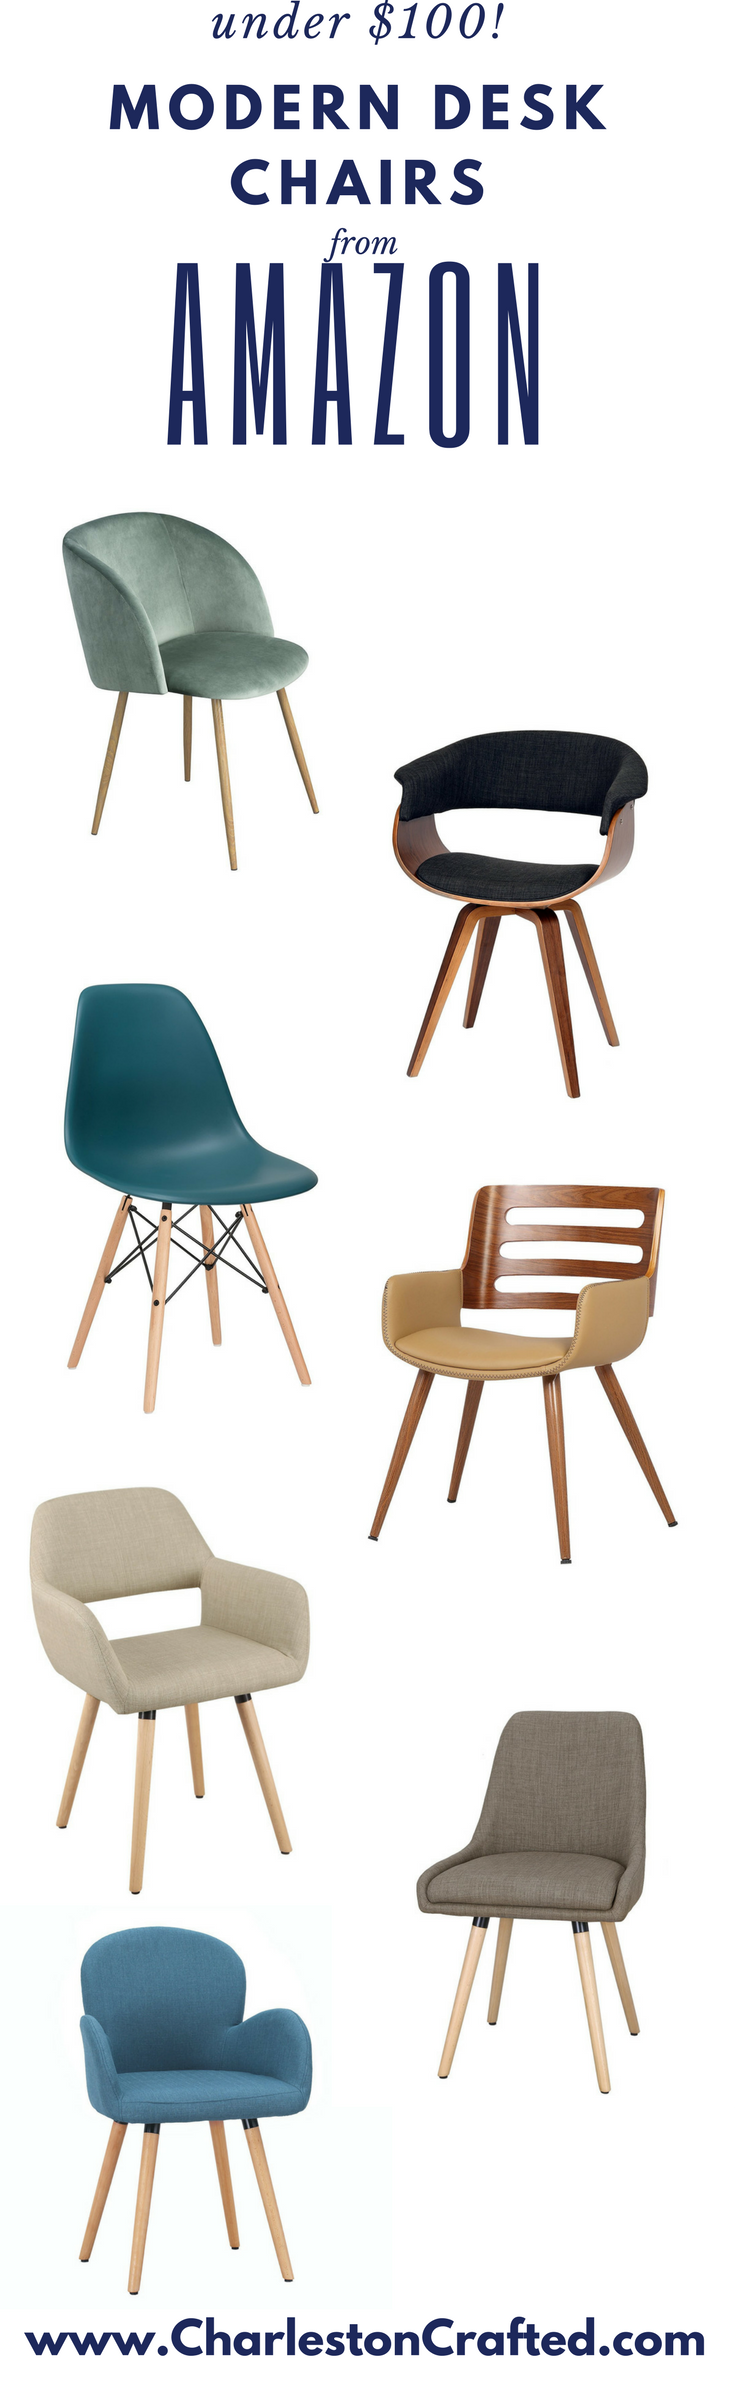 i was shocked to find so many good modern desk chairs that donu0027t look